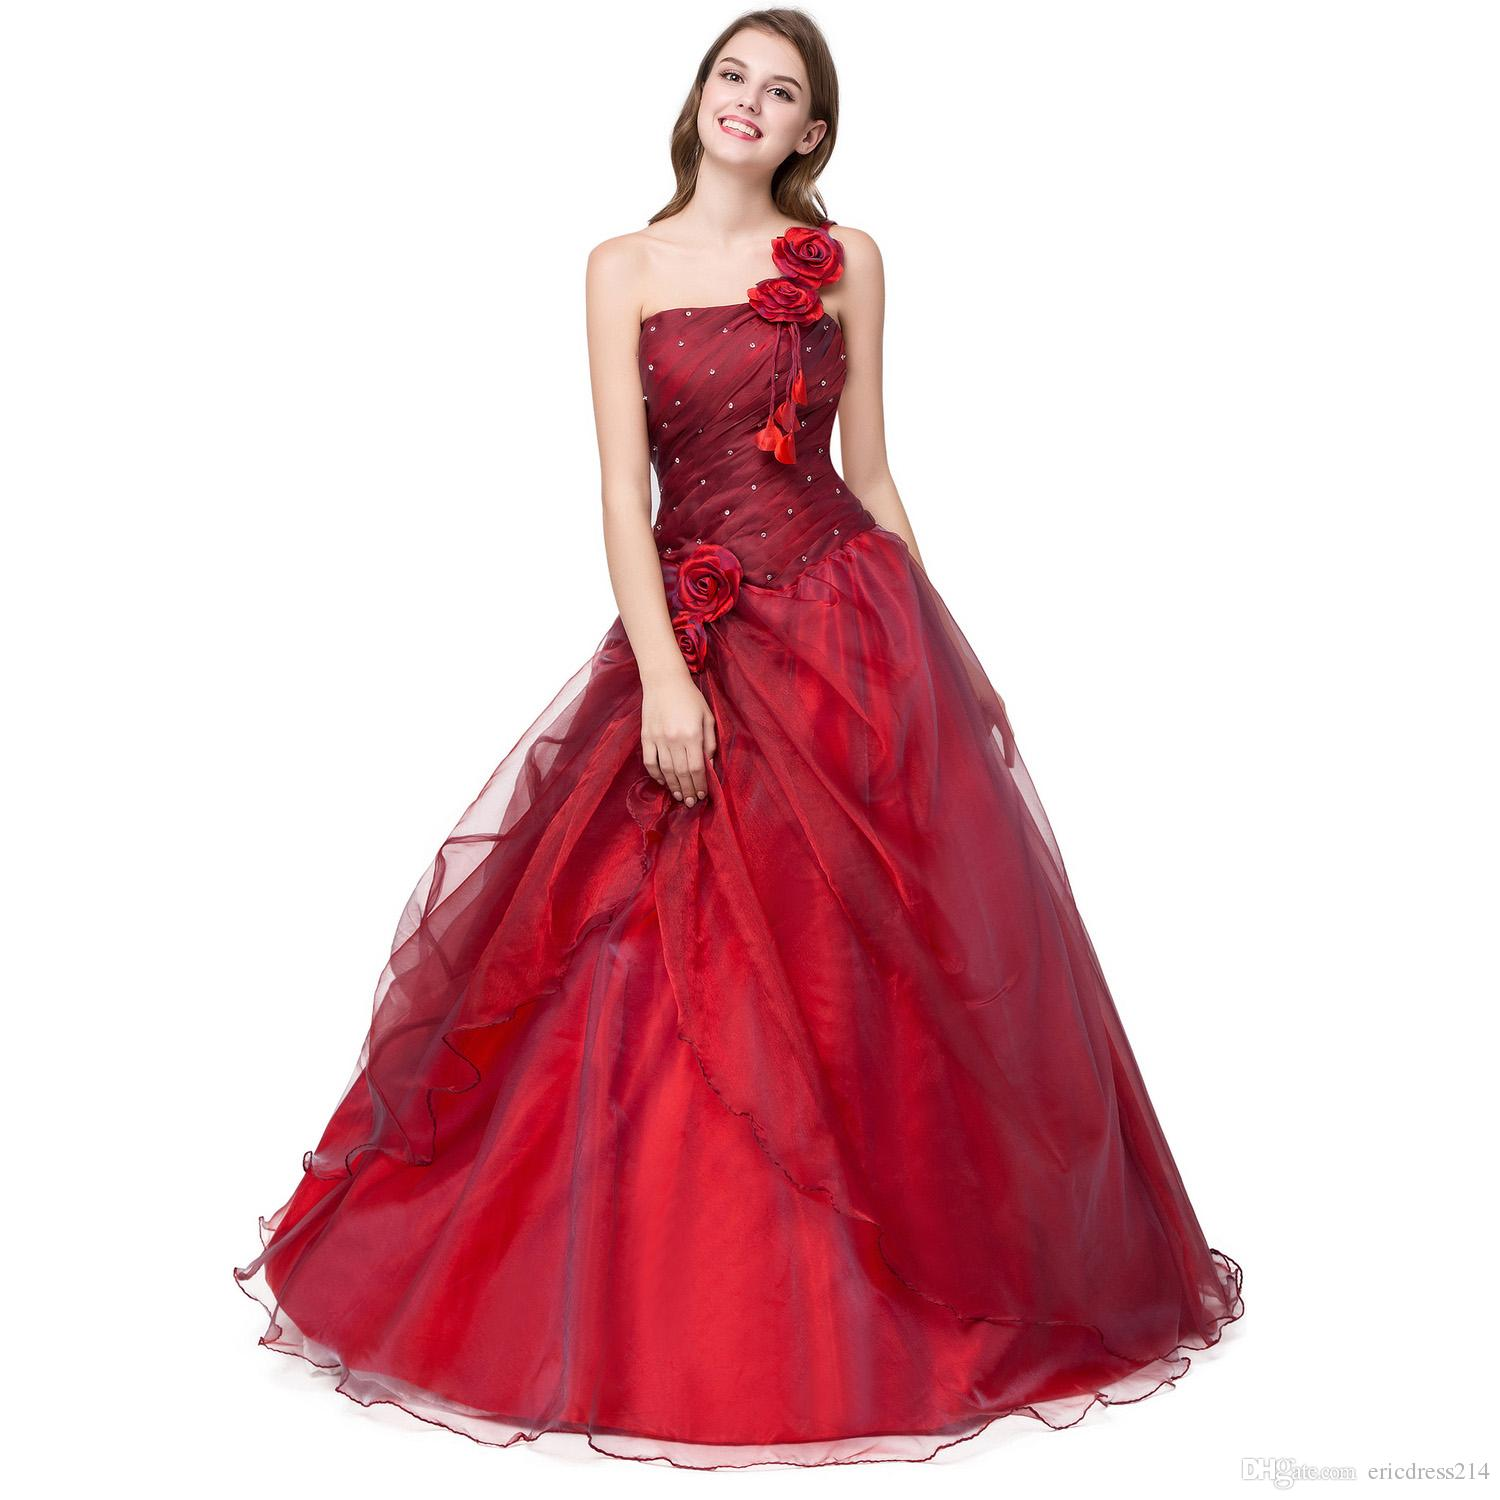 93bde7154104 2017 New Stock Cheap Formal Cheap One Shoulder Prom Dresses Under 100  Beaded Evening Gown Party Dress In Stock Different Prom Dresses Edgy Prom  Dresses From ...